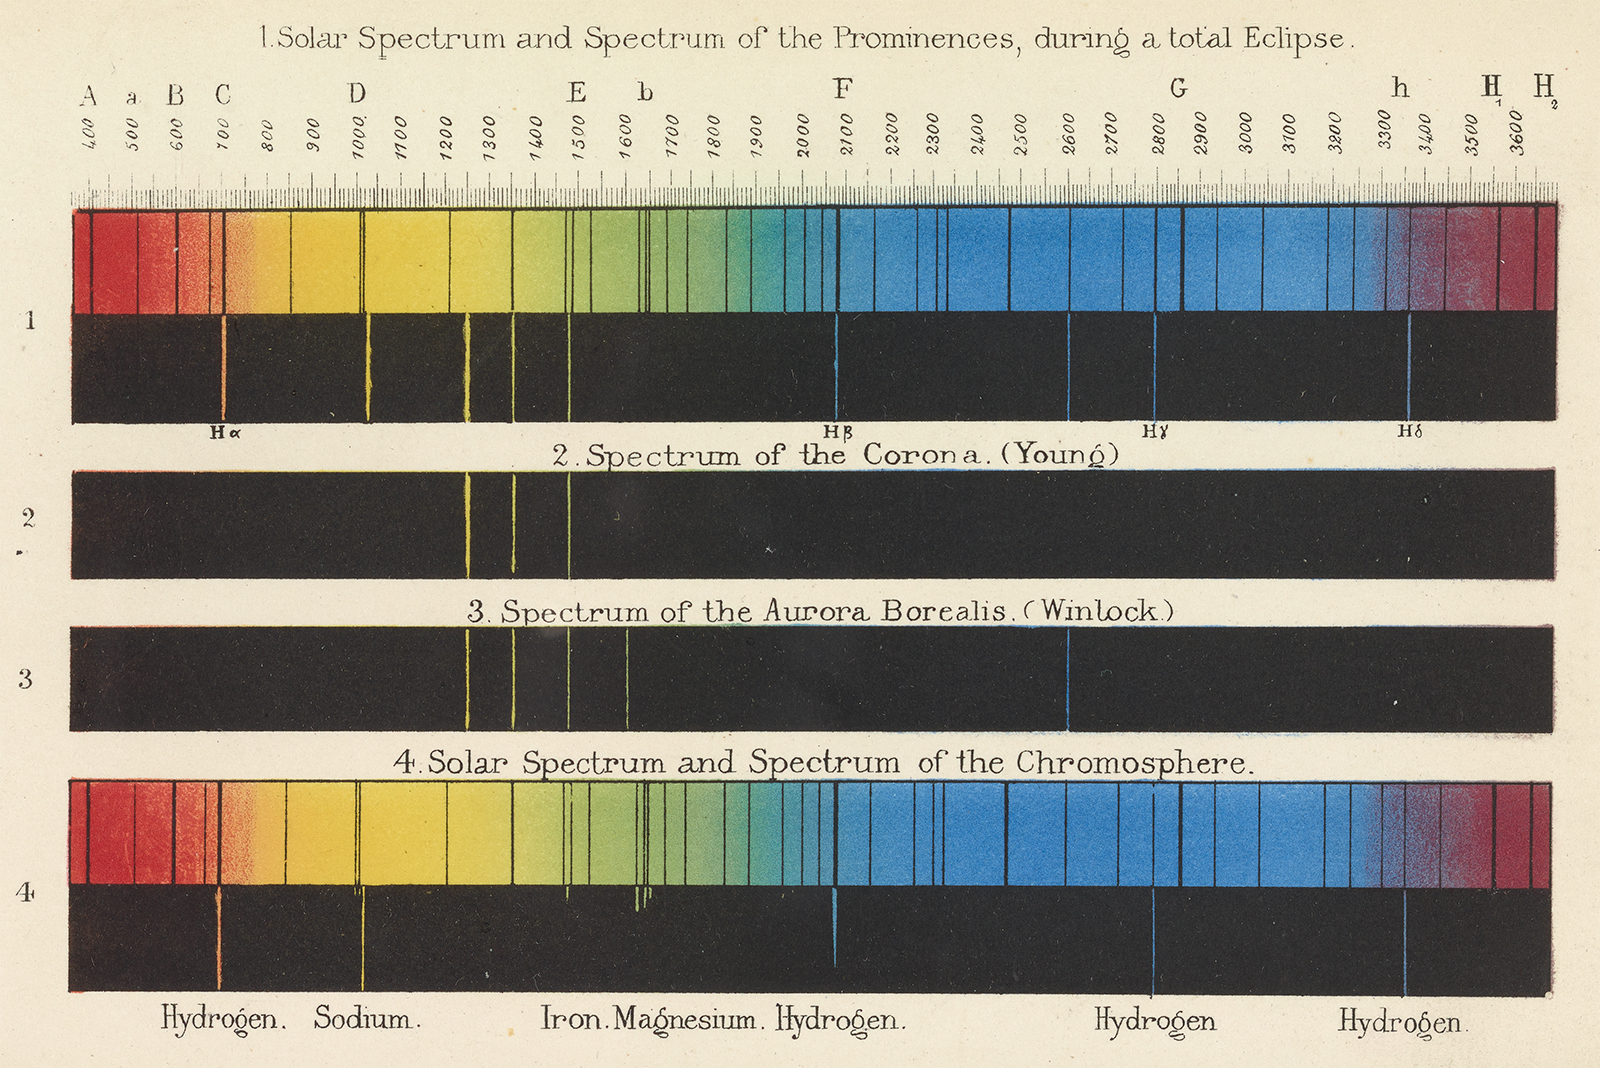 Color illustrations of solar spectra